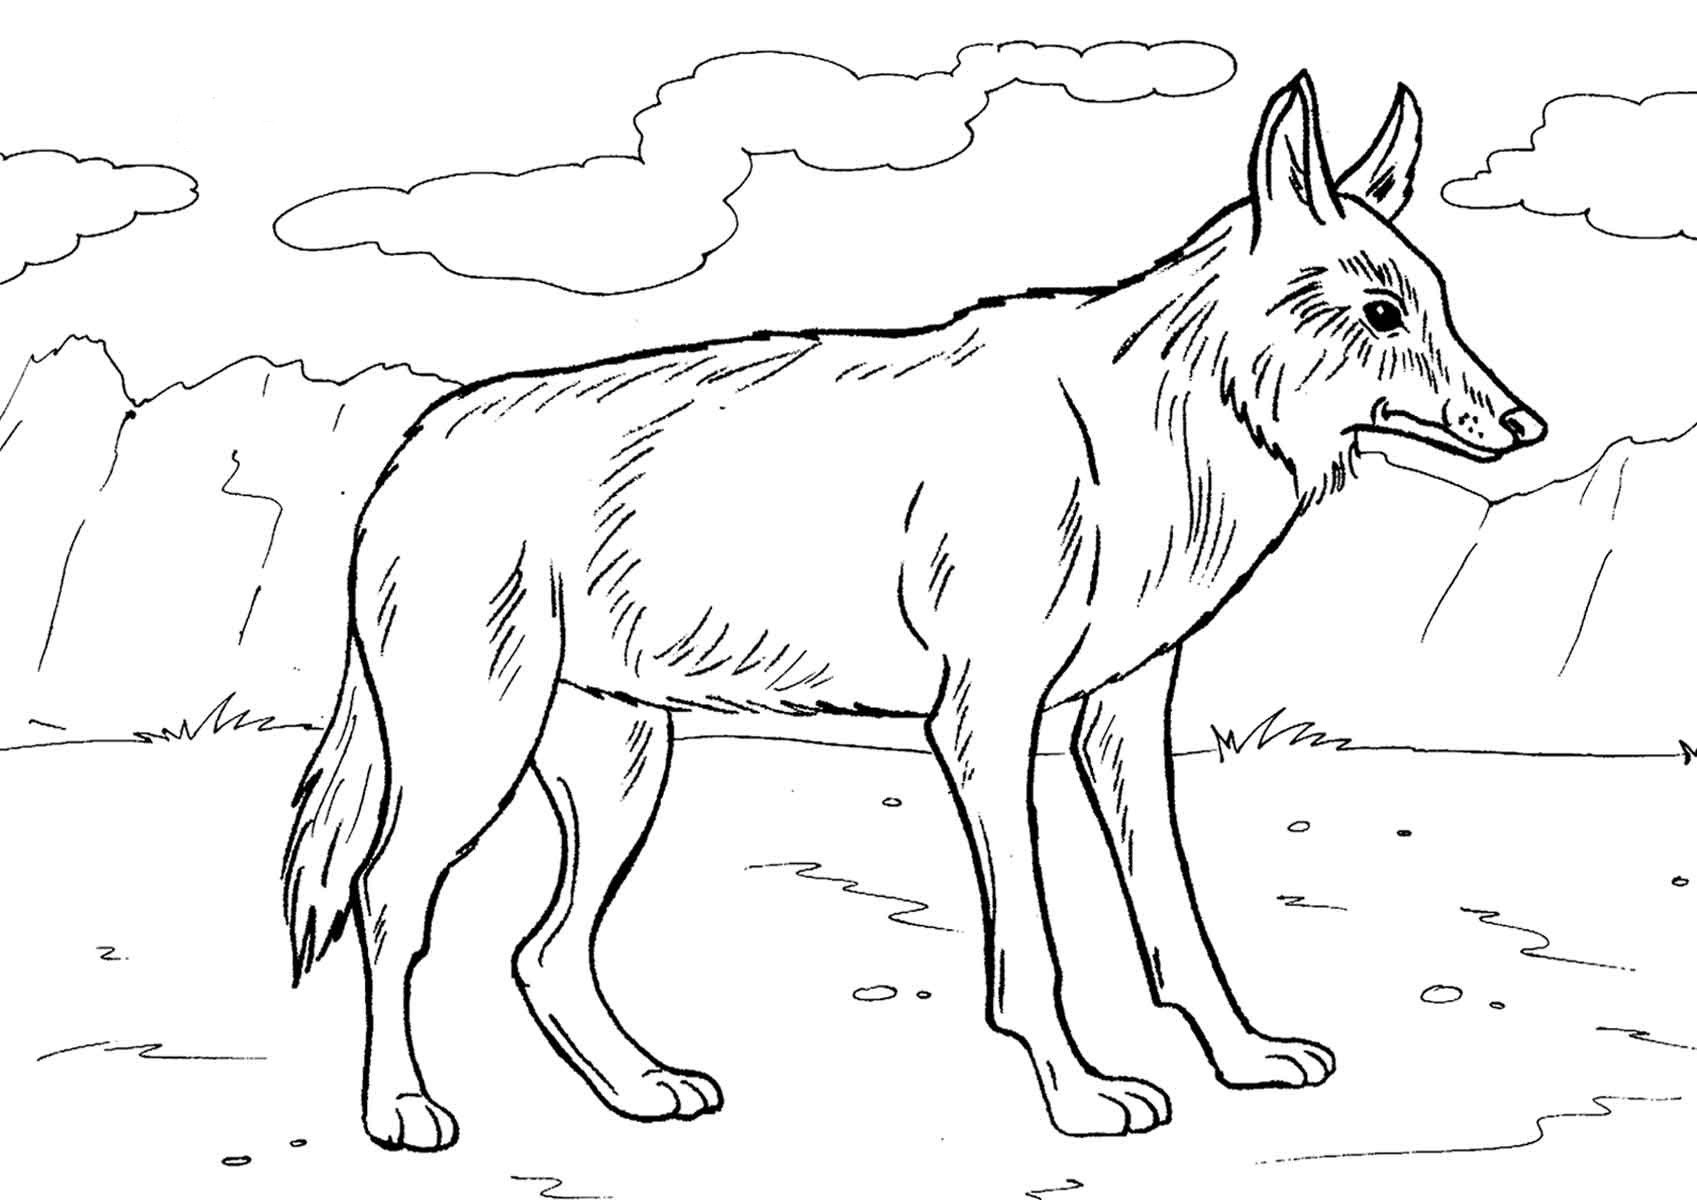 coyote coloring page free printable coyote coloring pages for kids coyote page coloring